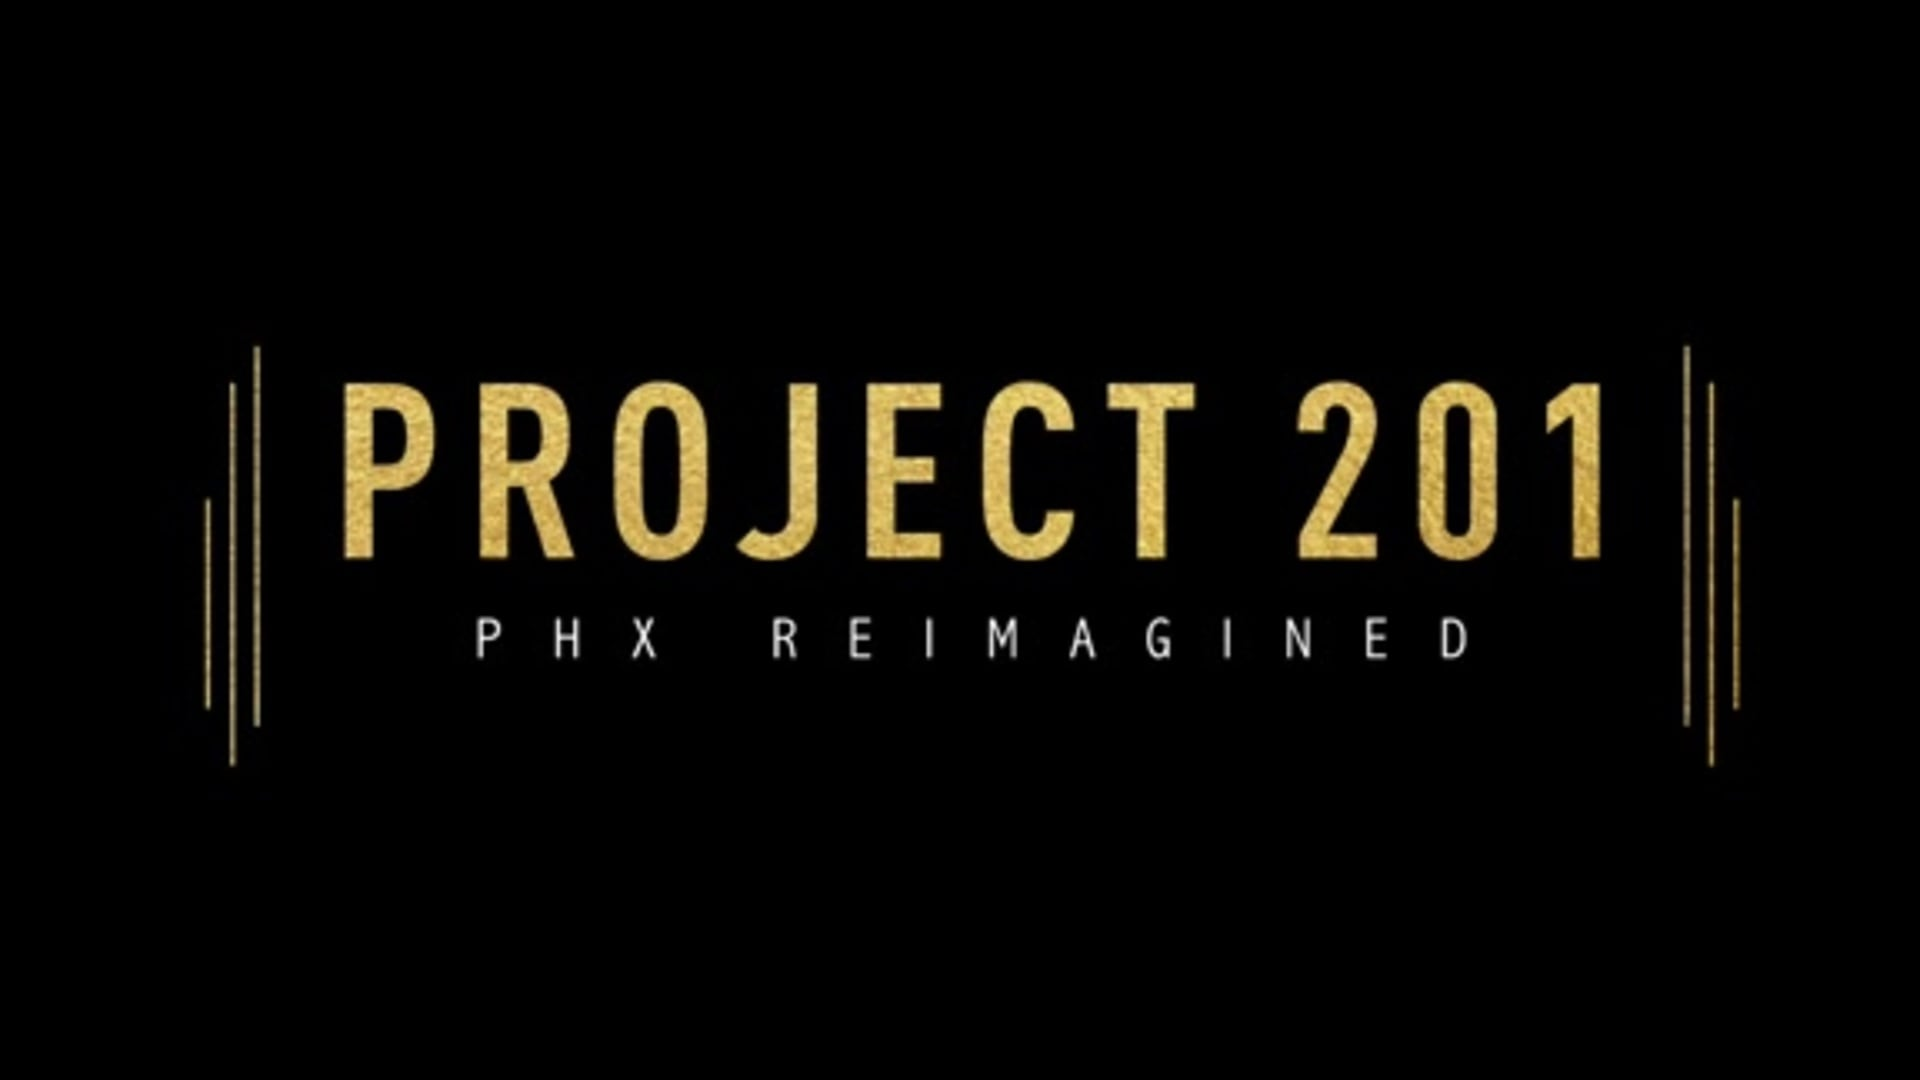 Project 201 | PHX Reimagined